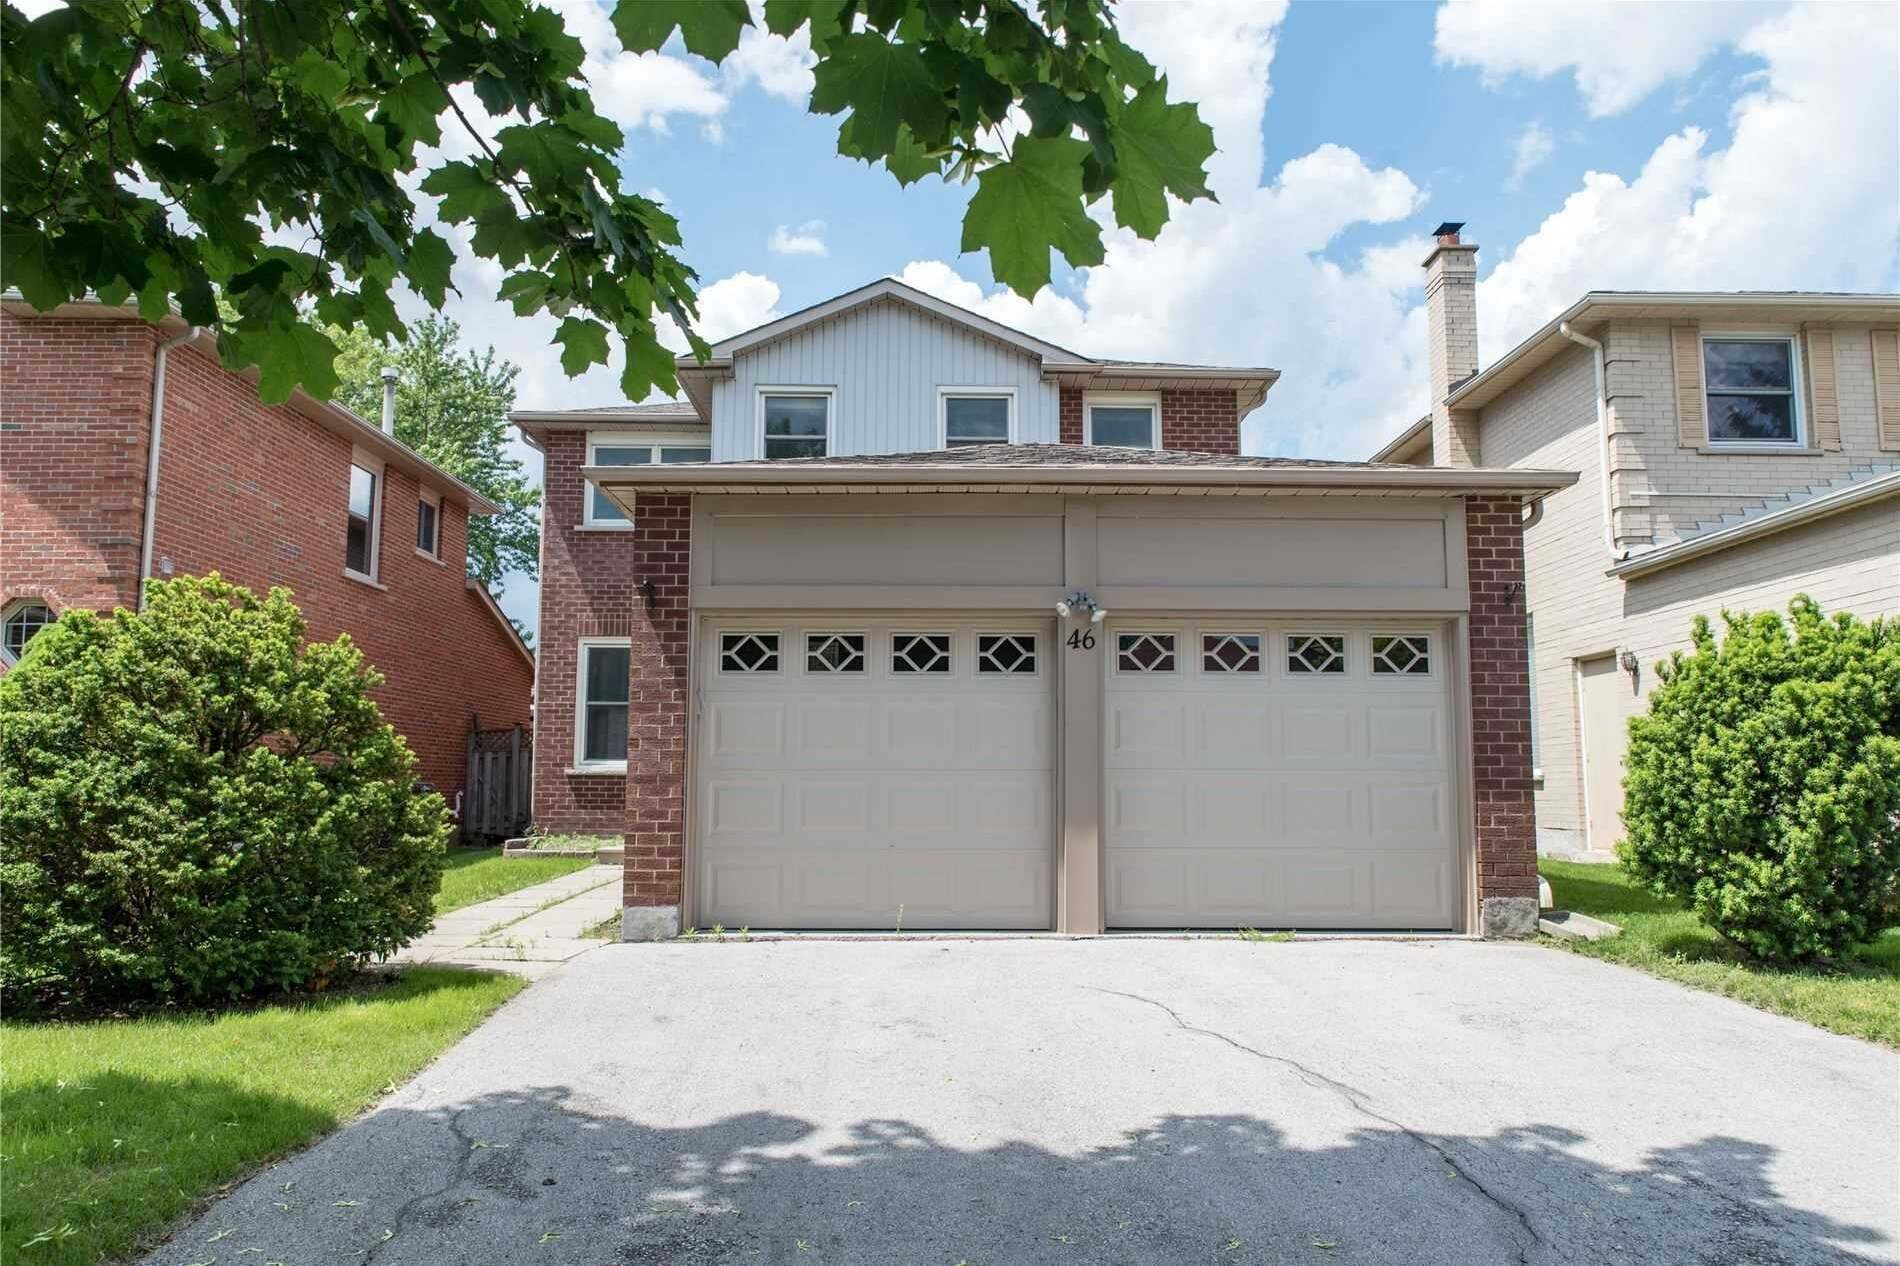 House for sale at 46 Couperthwaite Cres Markham Ontario - MLS: N4894623